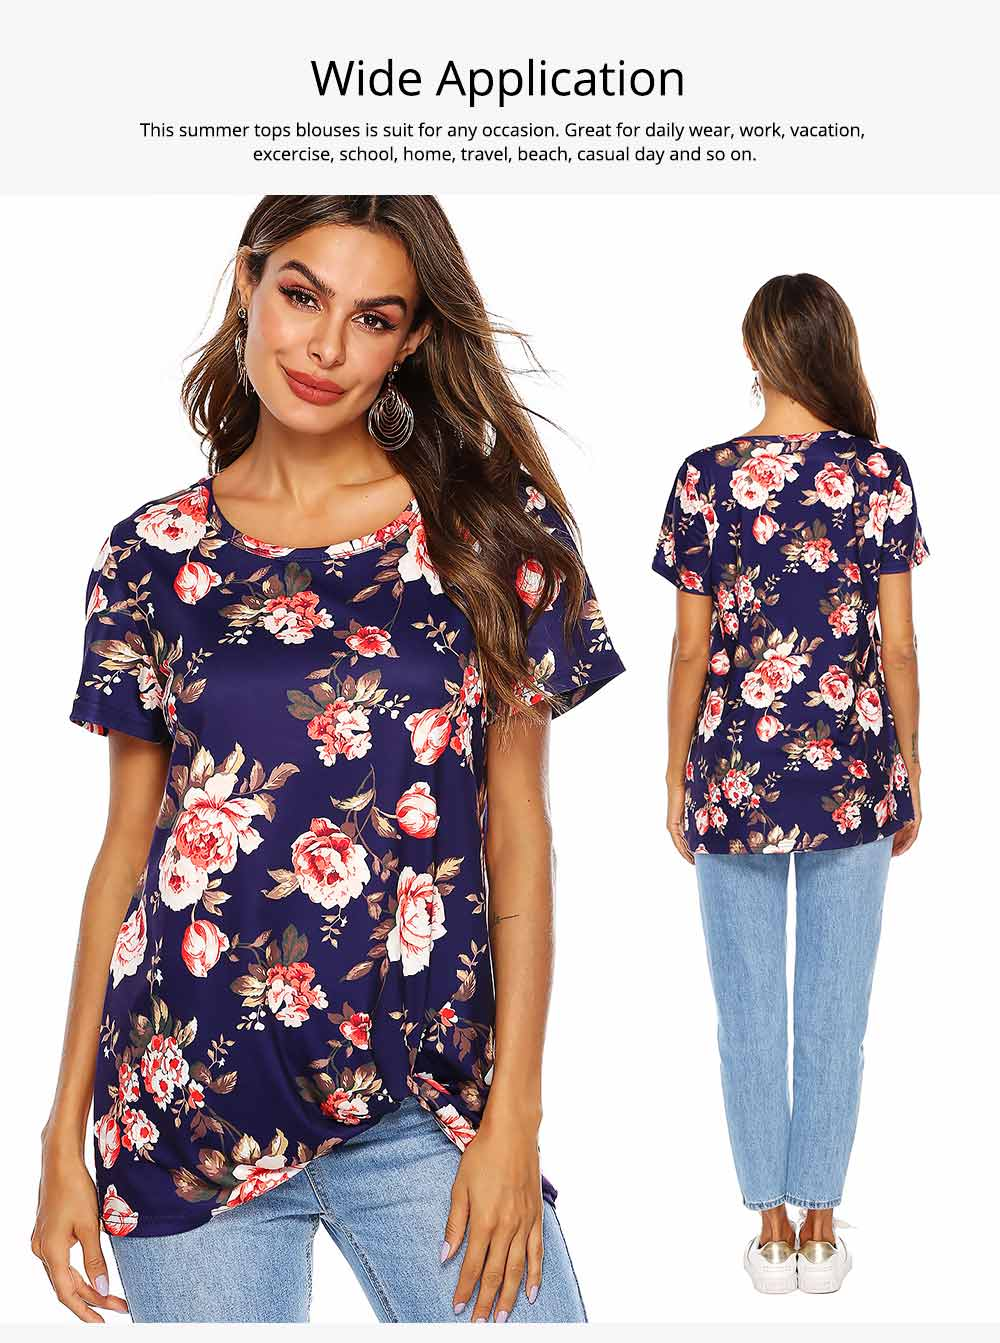 Women's Casual T-Shirt, Short Sleeve Tunic Tops with Front Knot Side Twist, Fashion Summer Blouses 2019 4